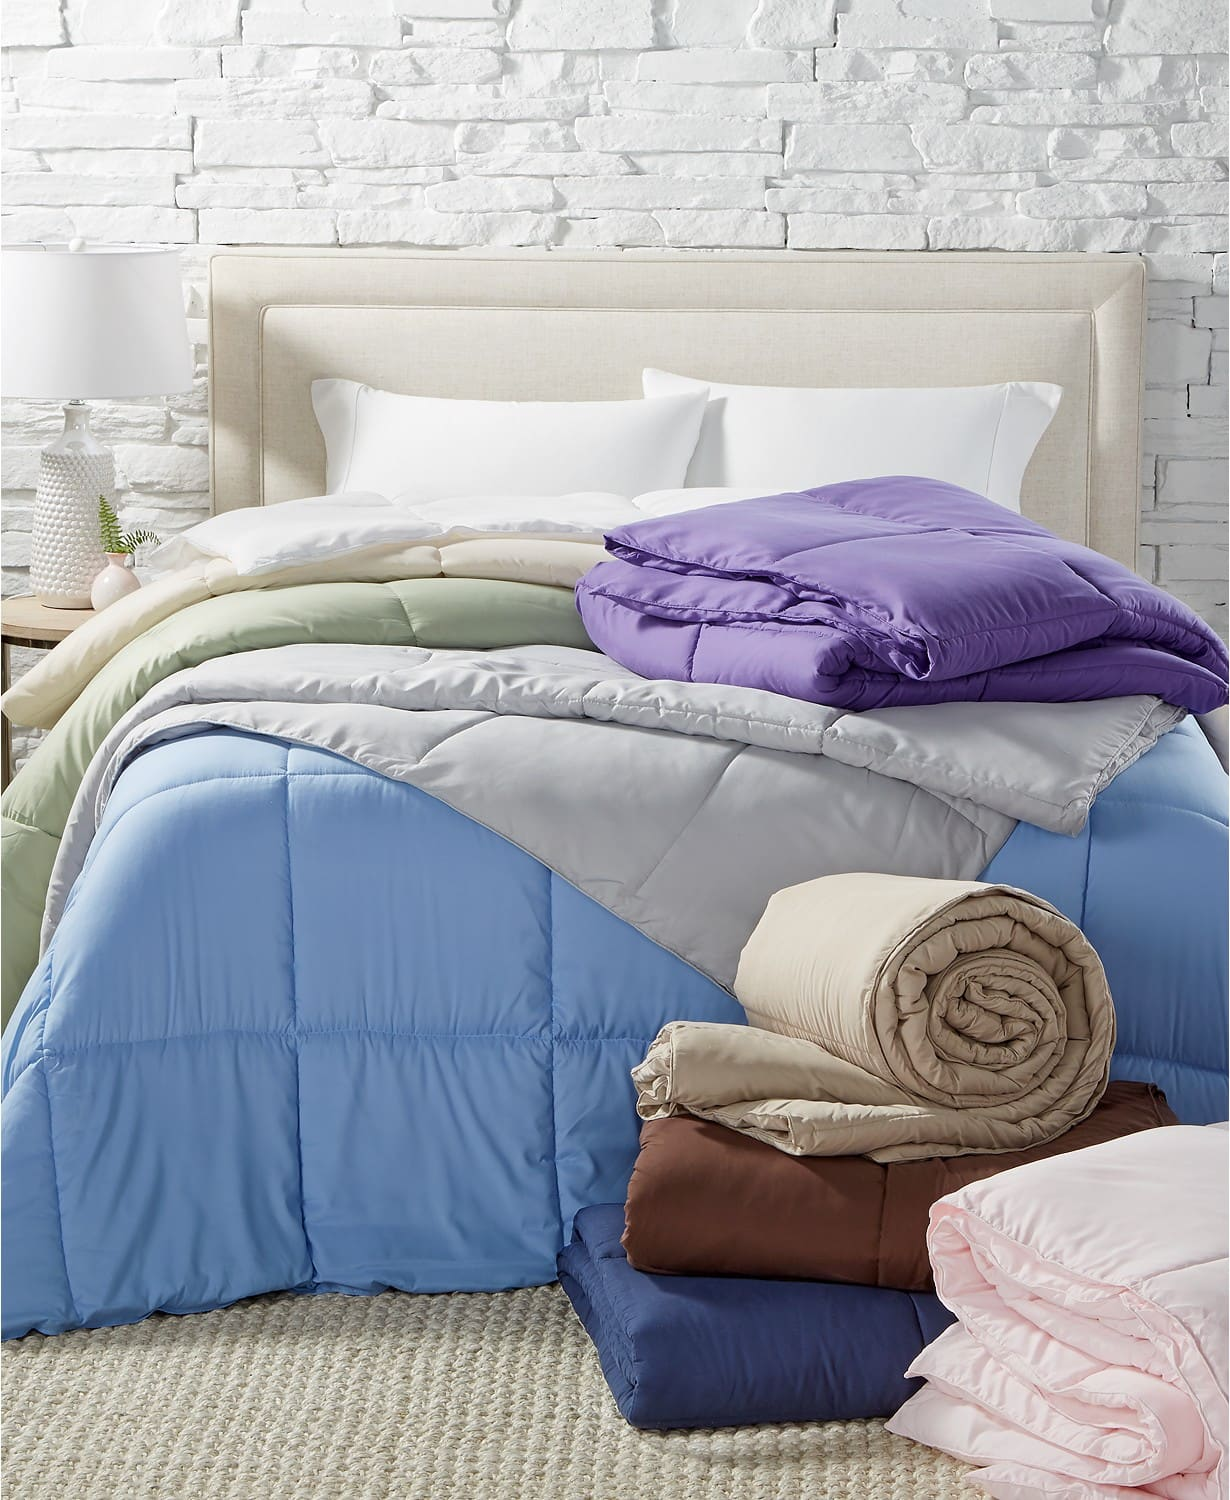 Royal Luxe Lightweight Microfiber Color Down Alternative Comforter (all sizes) $20 + Free store pickup at Macys